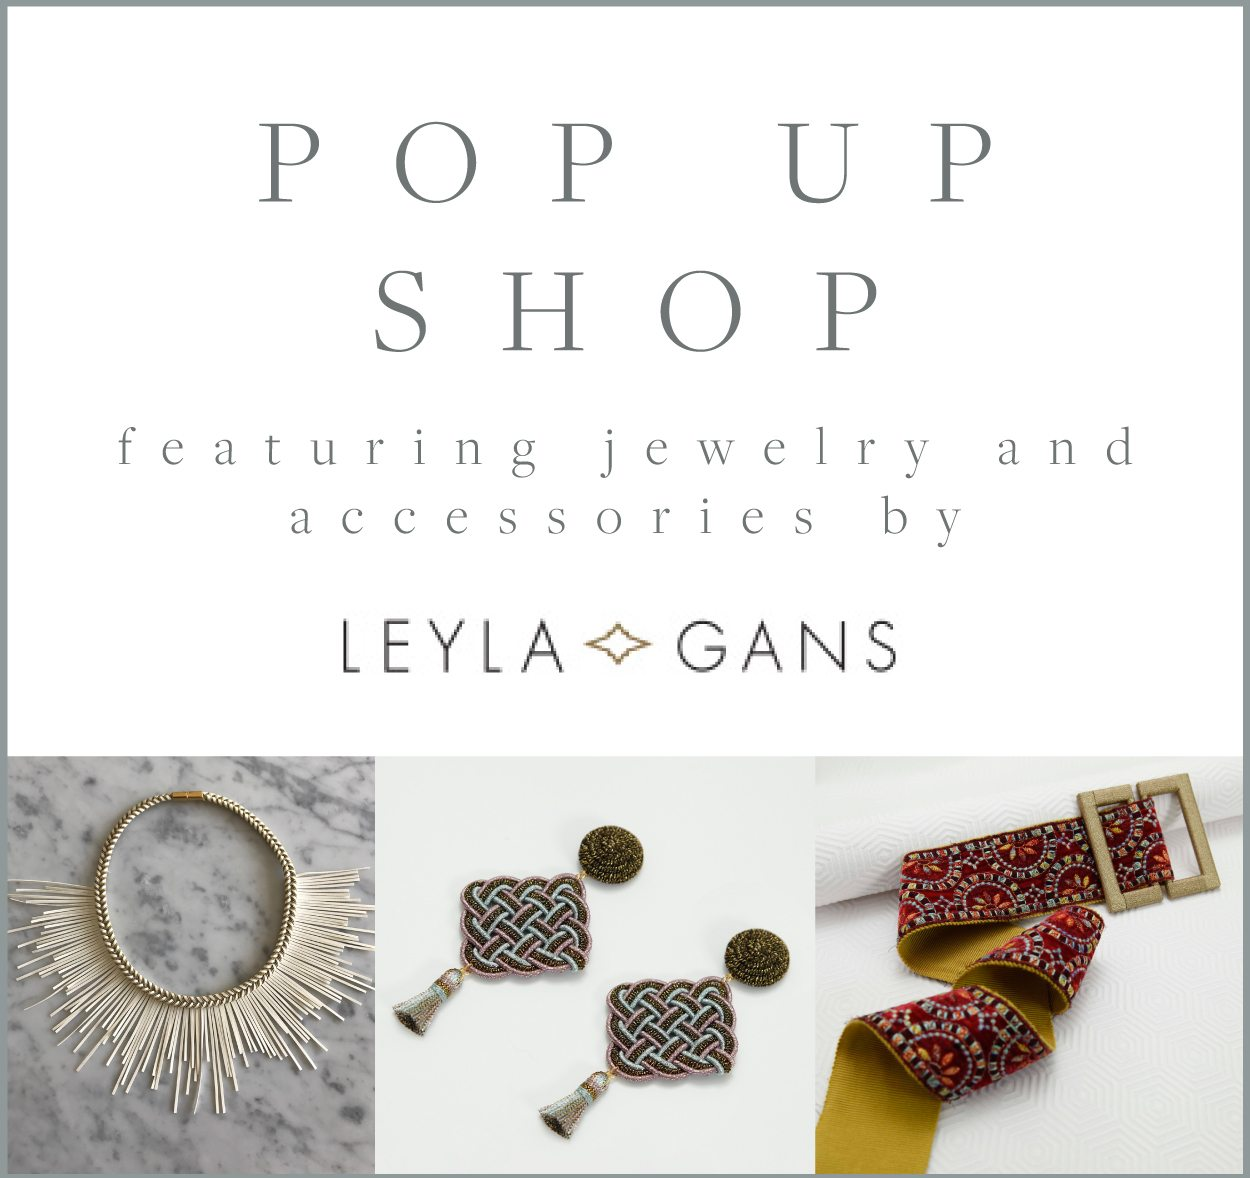 leyla-gans-pop-up-shop-graphic